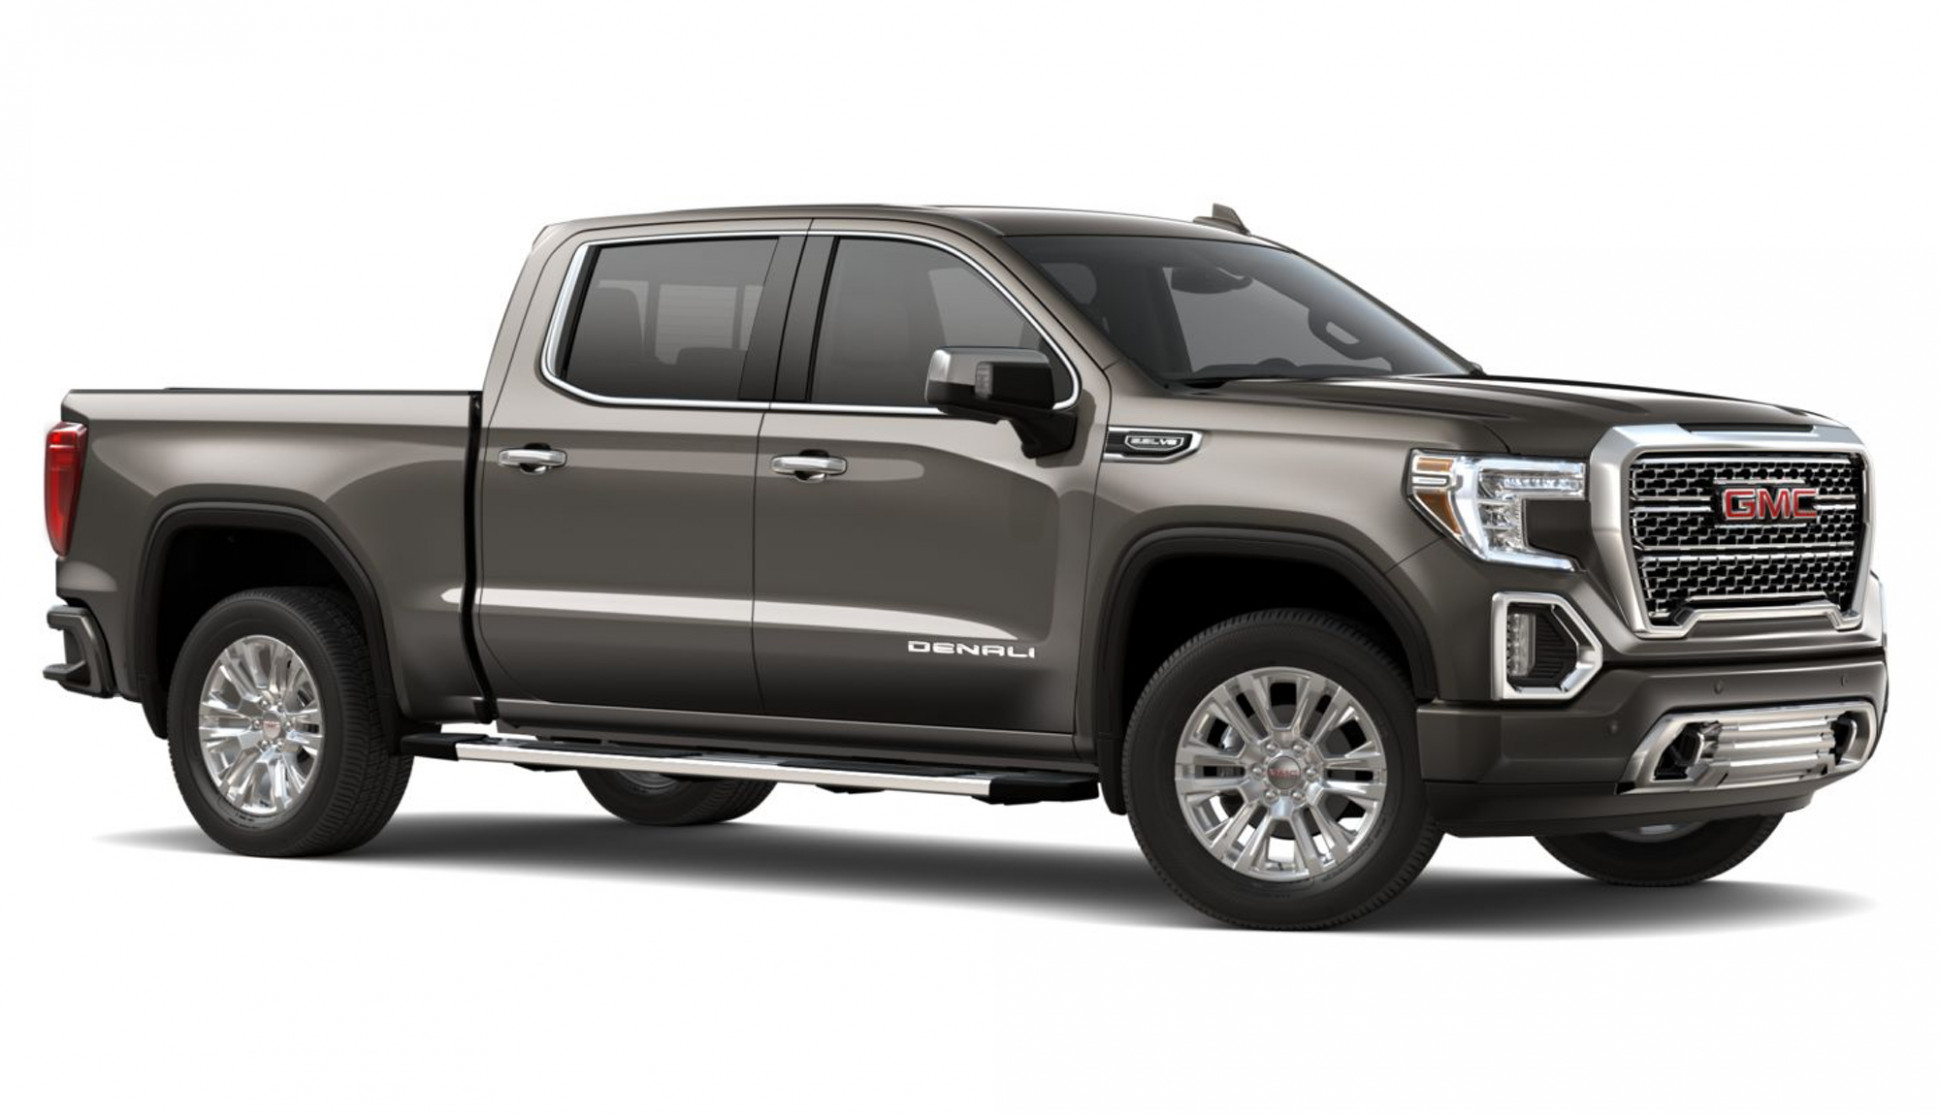 8 Sierra 8 Ditches This Paint Option, Gains New One | GM ..